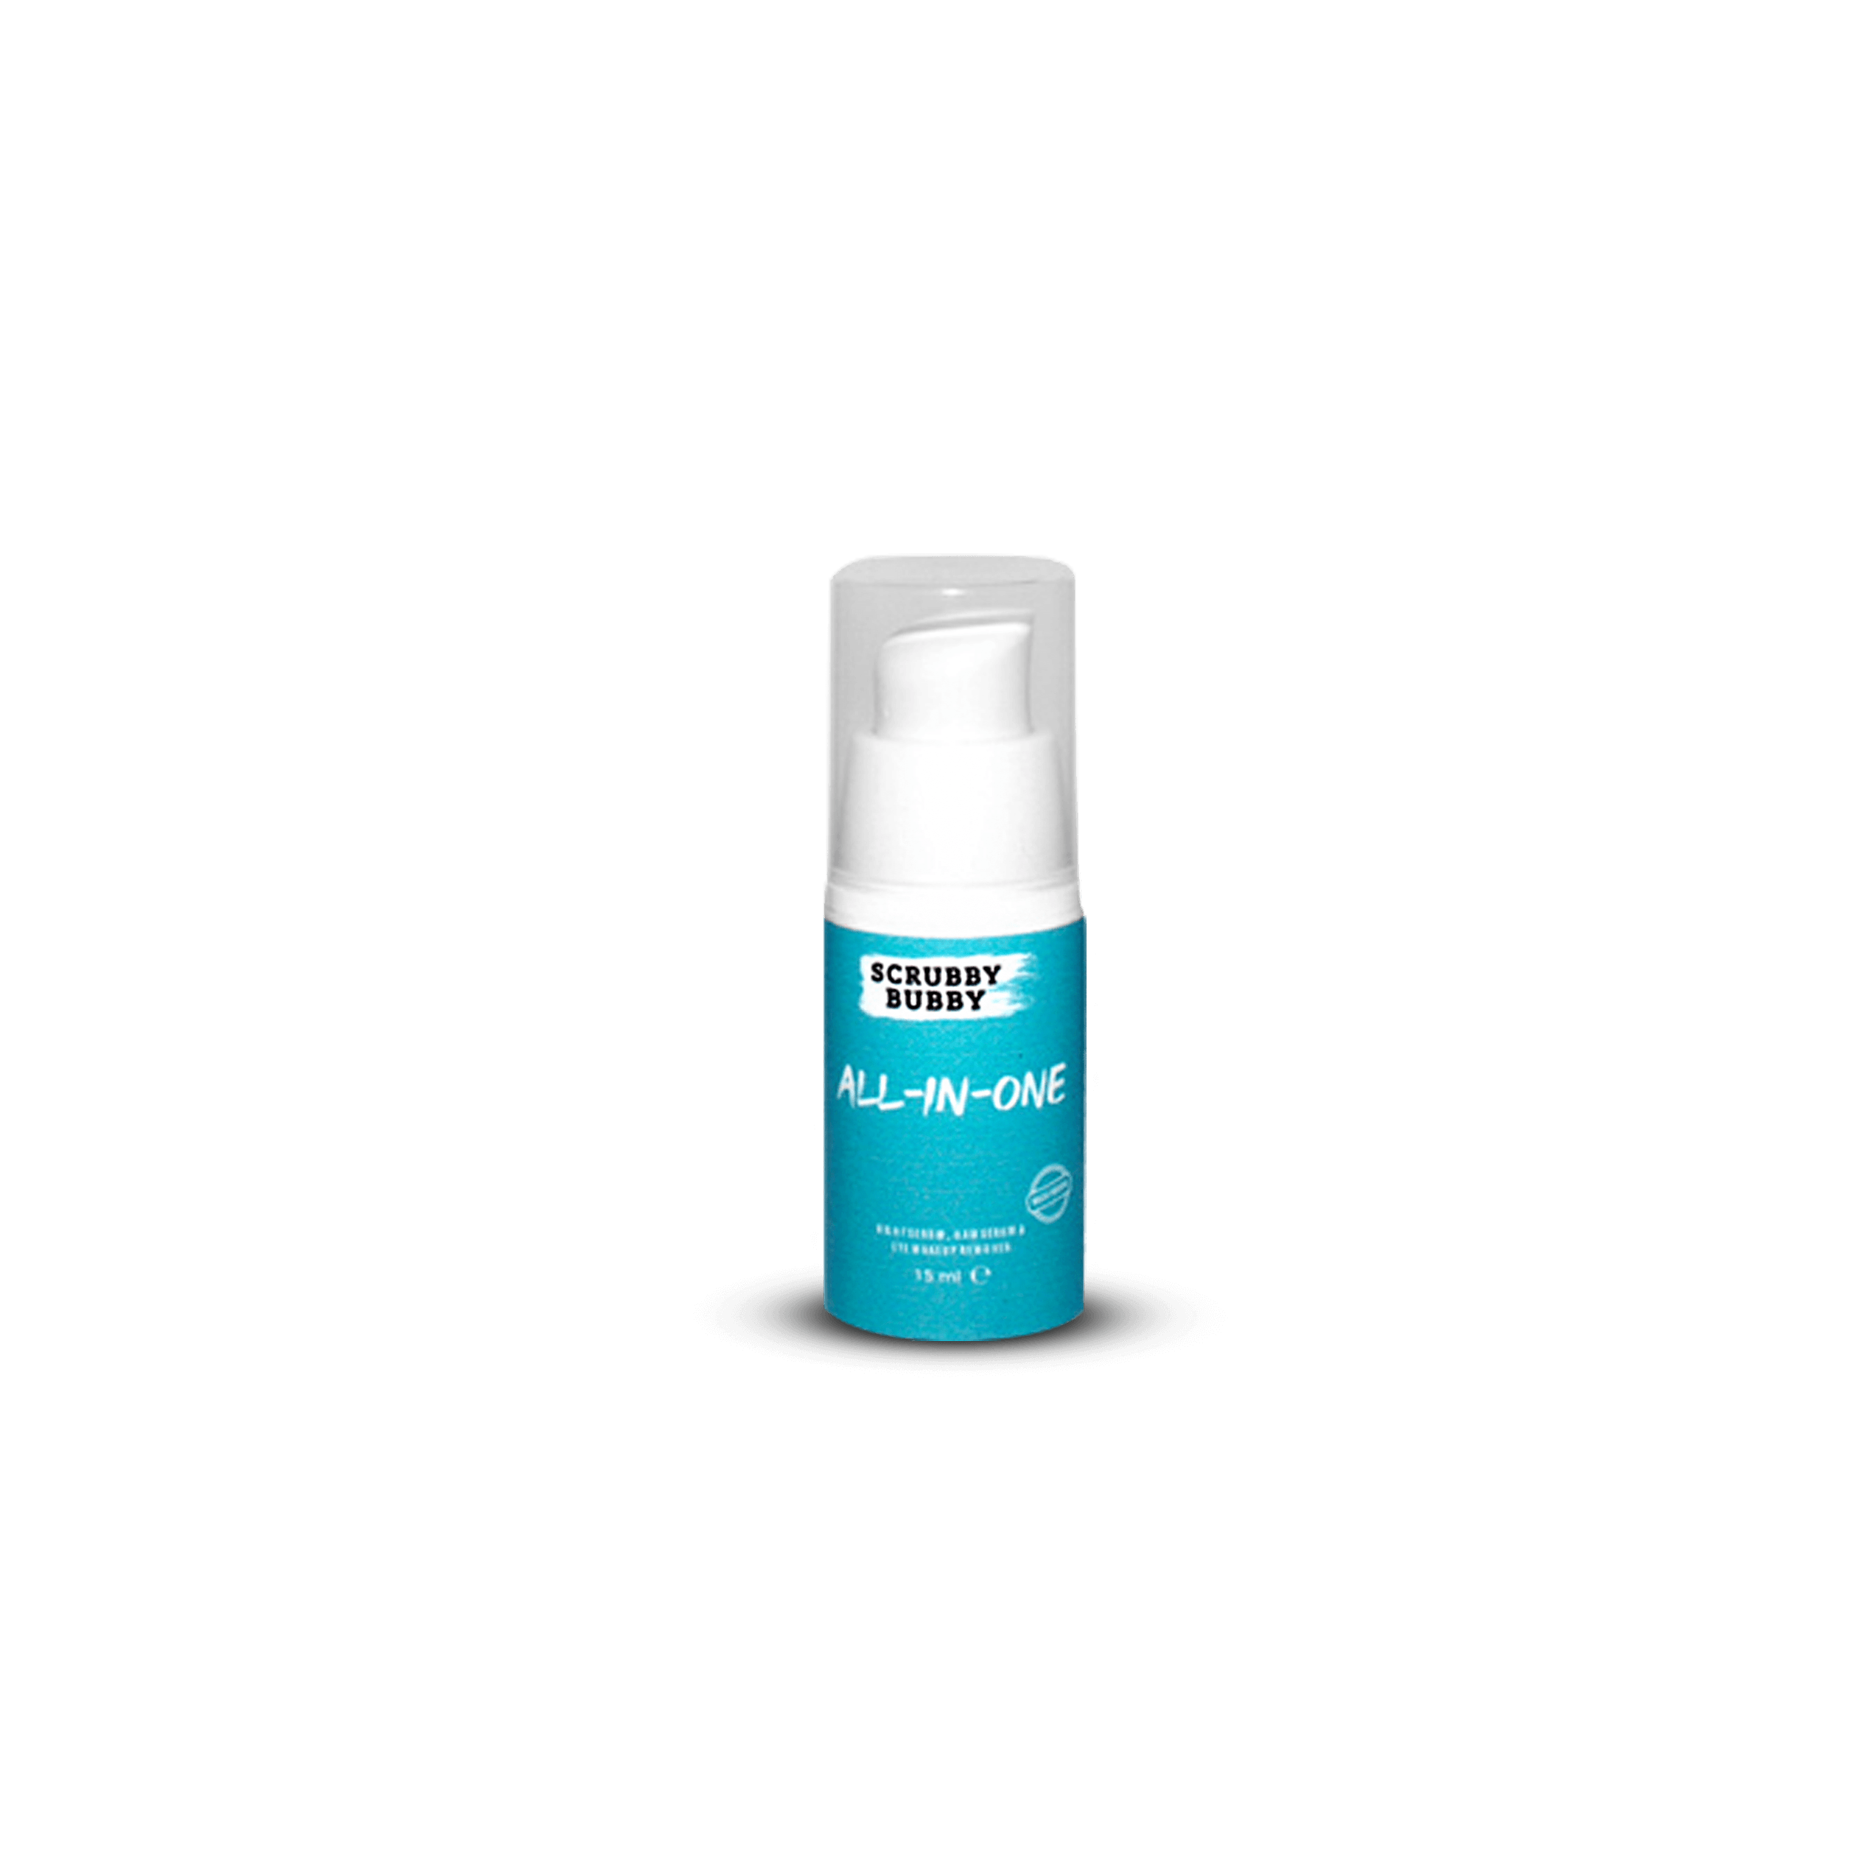 All-In-One Night Serum • Skincare • Source Beauty Egypt